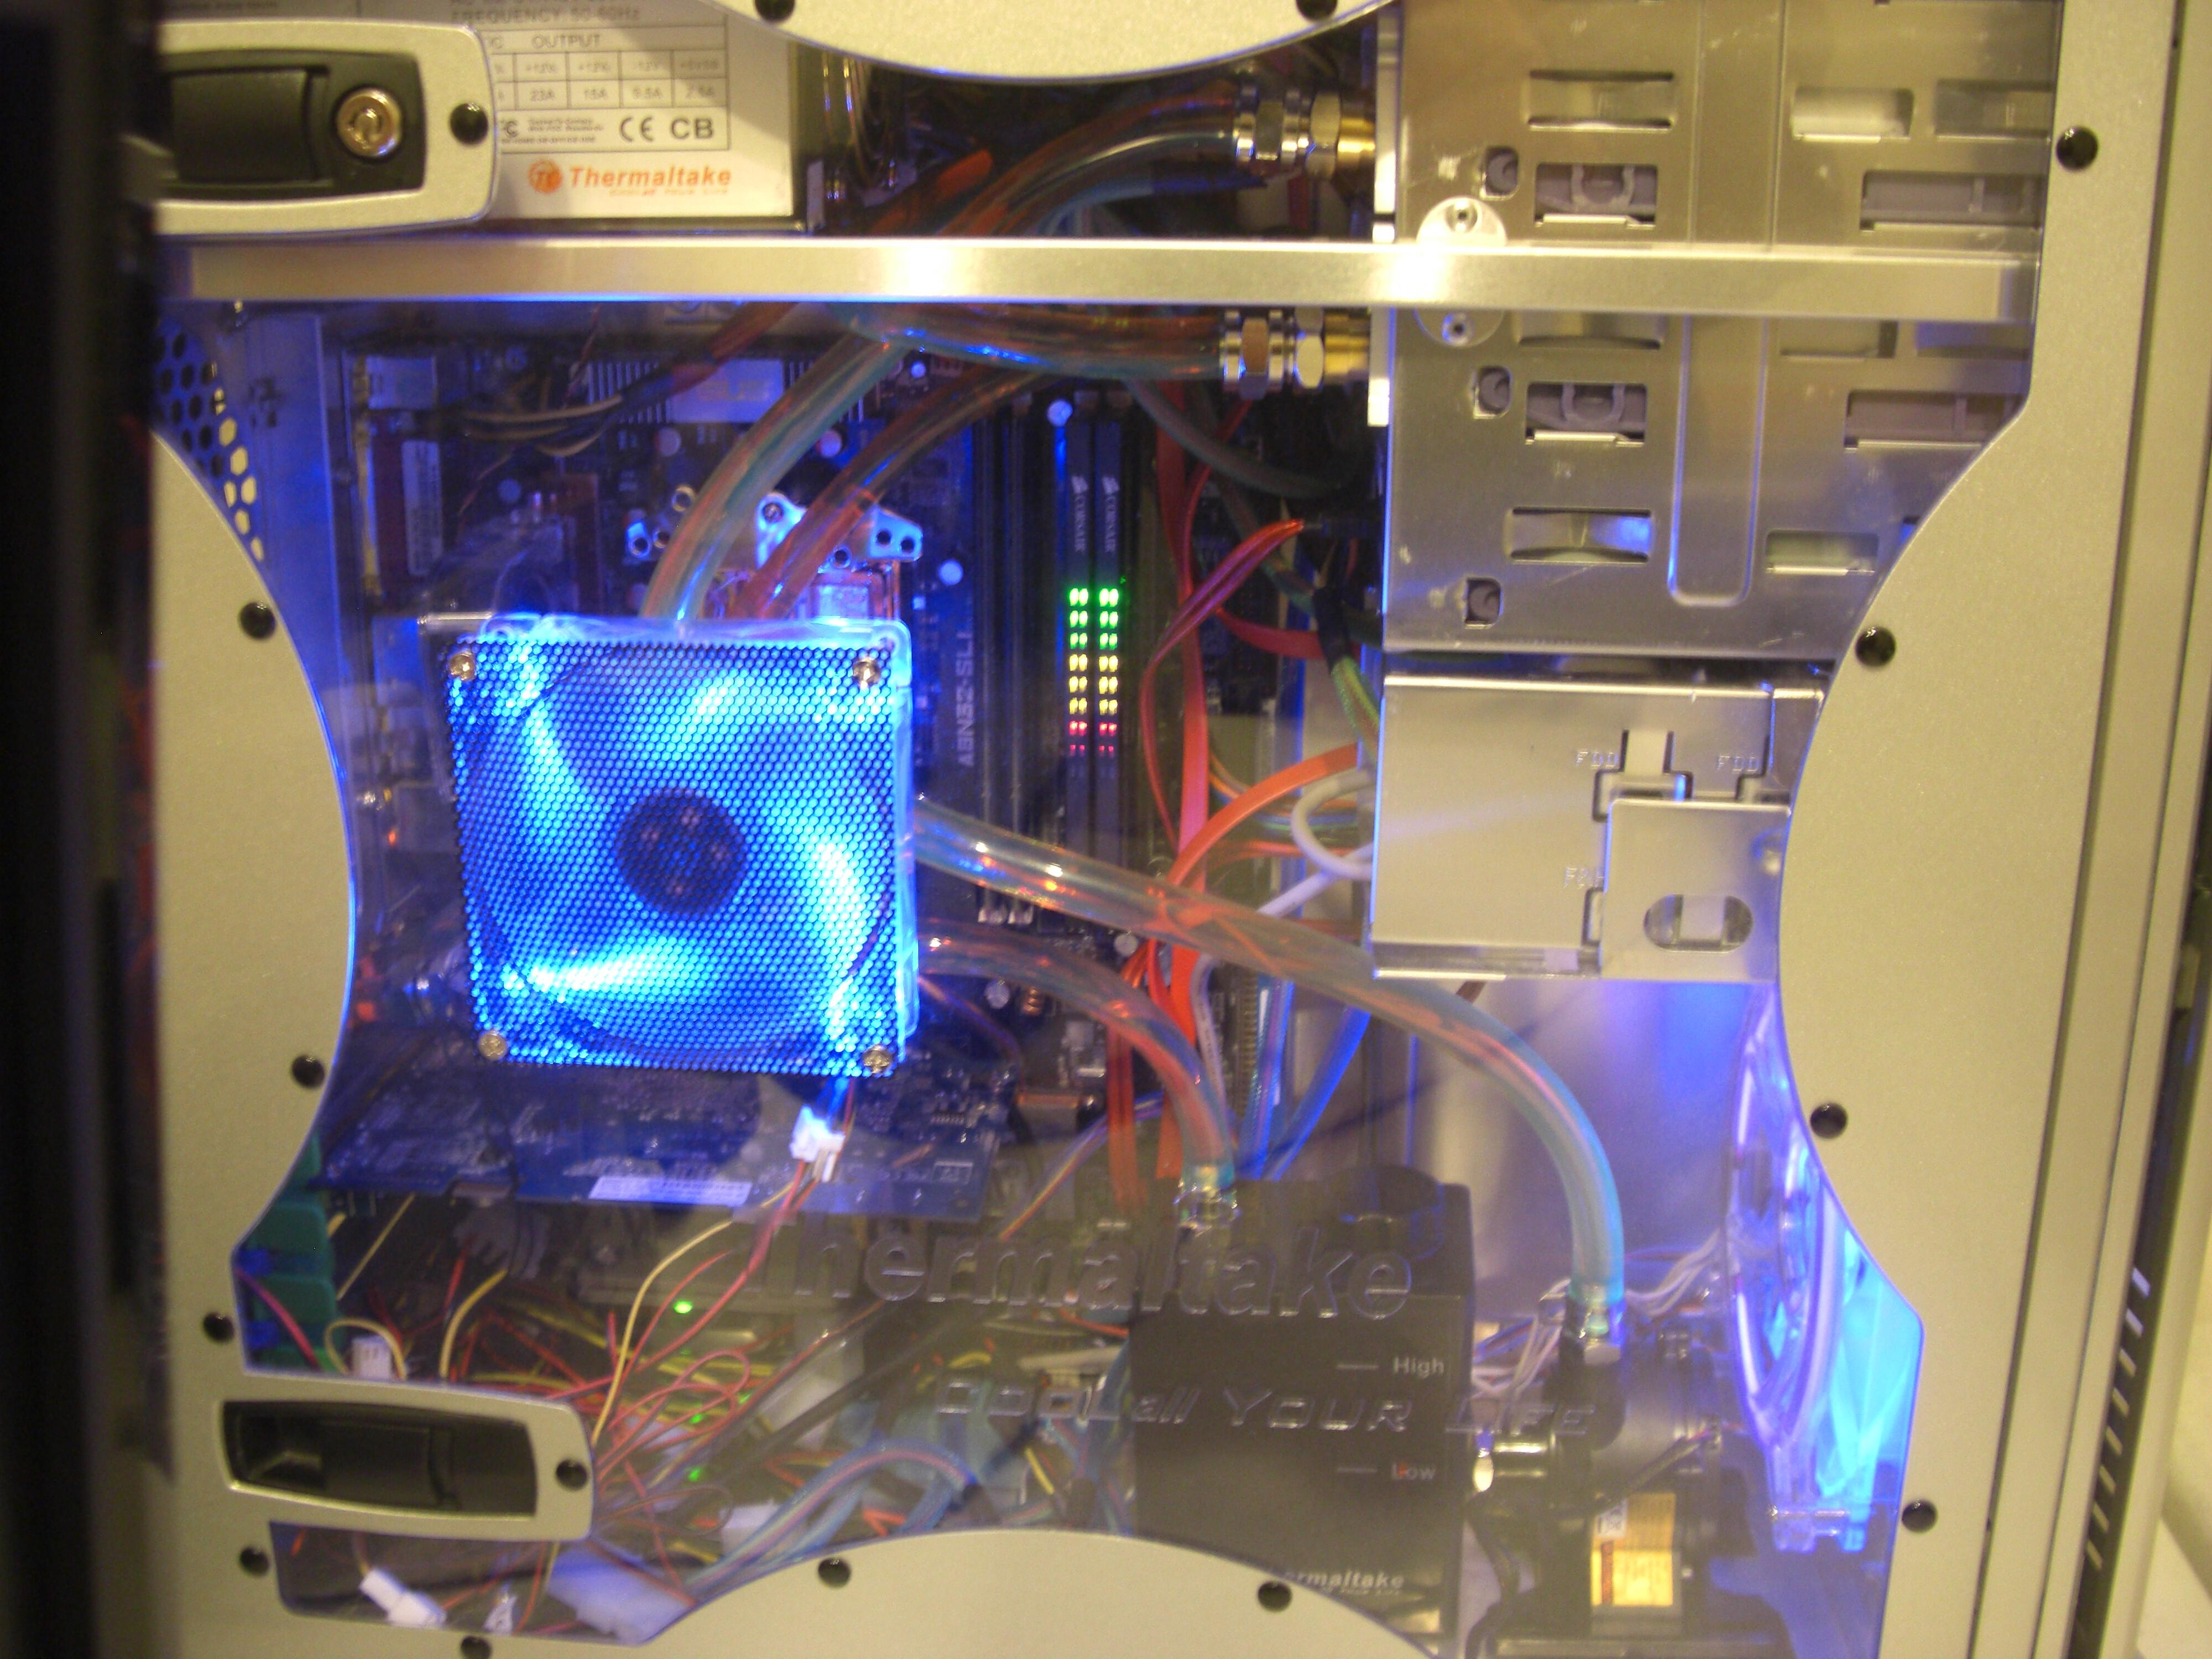 Thermaltake ProWater 850i Liquid Cooling system